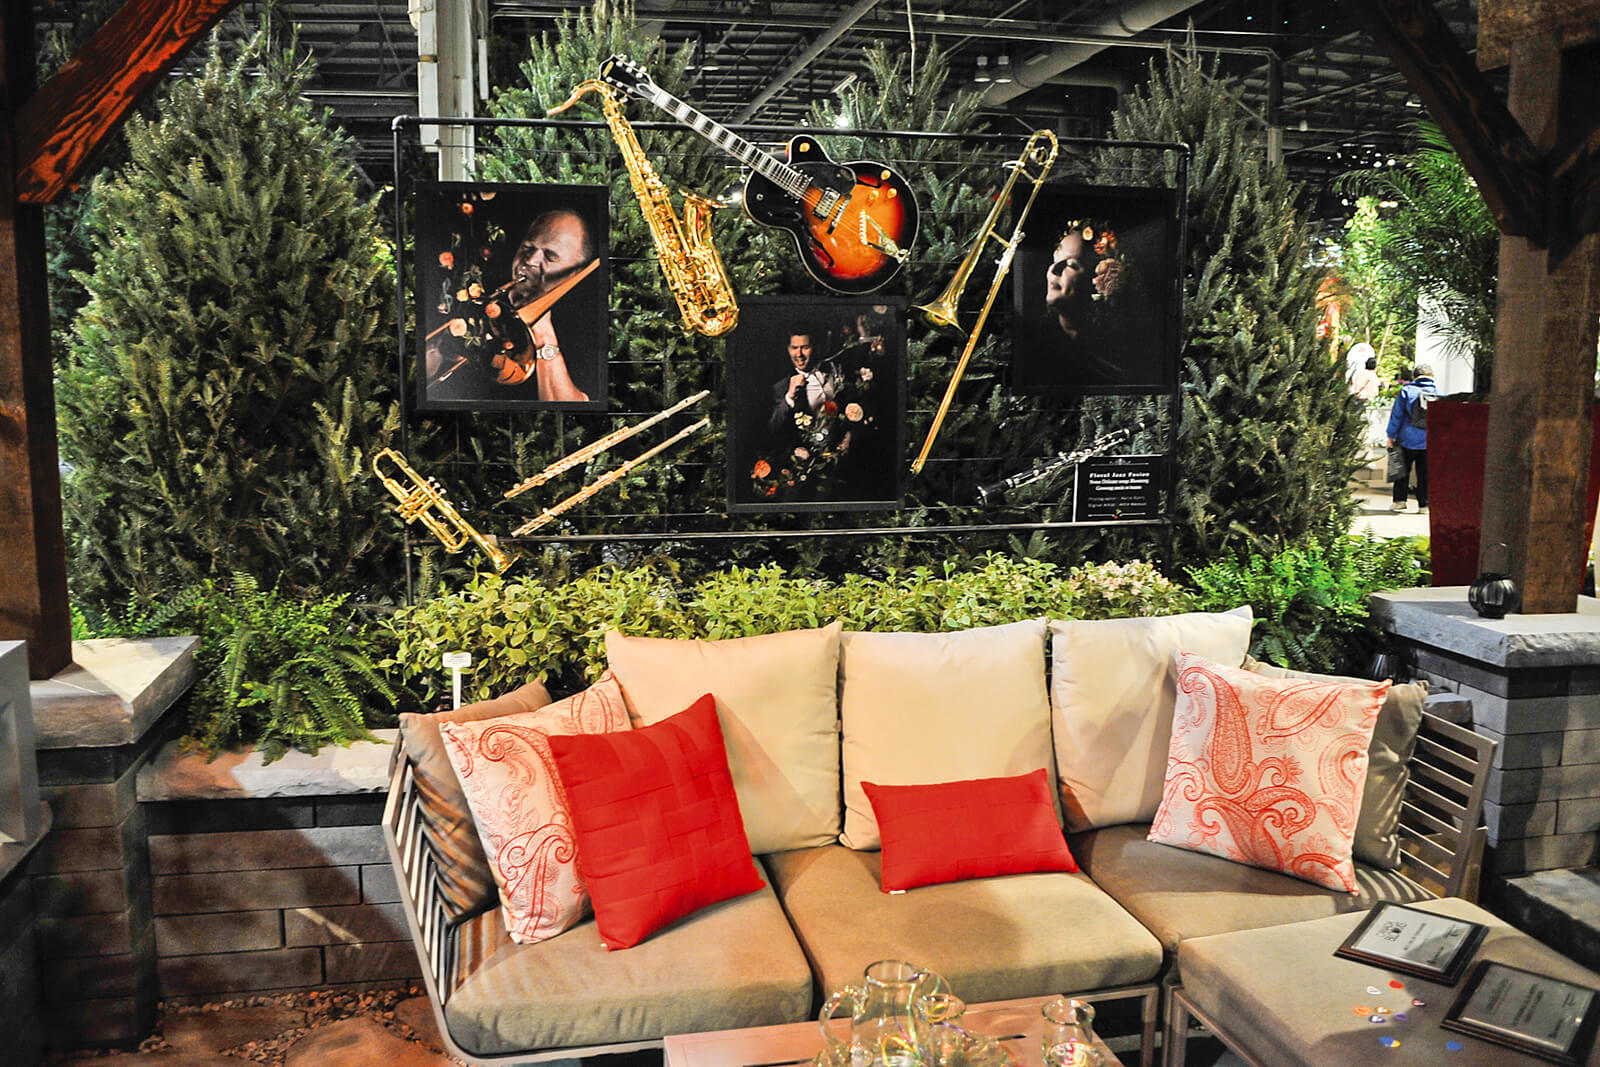 feature garden with couch and musical instruments suspended above